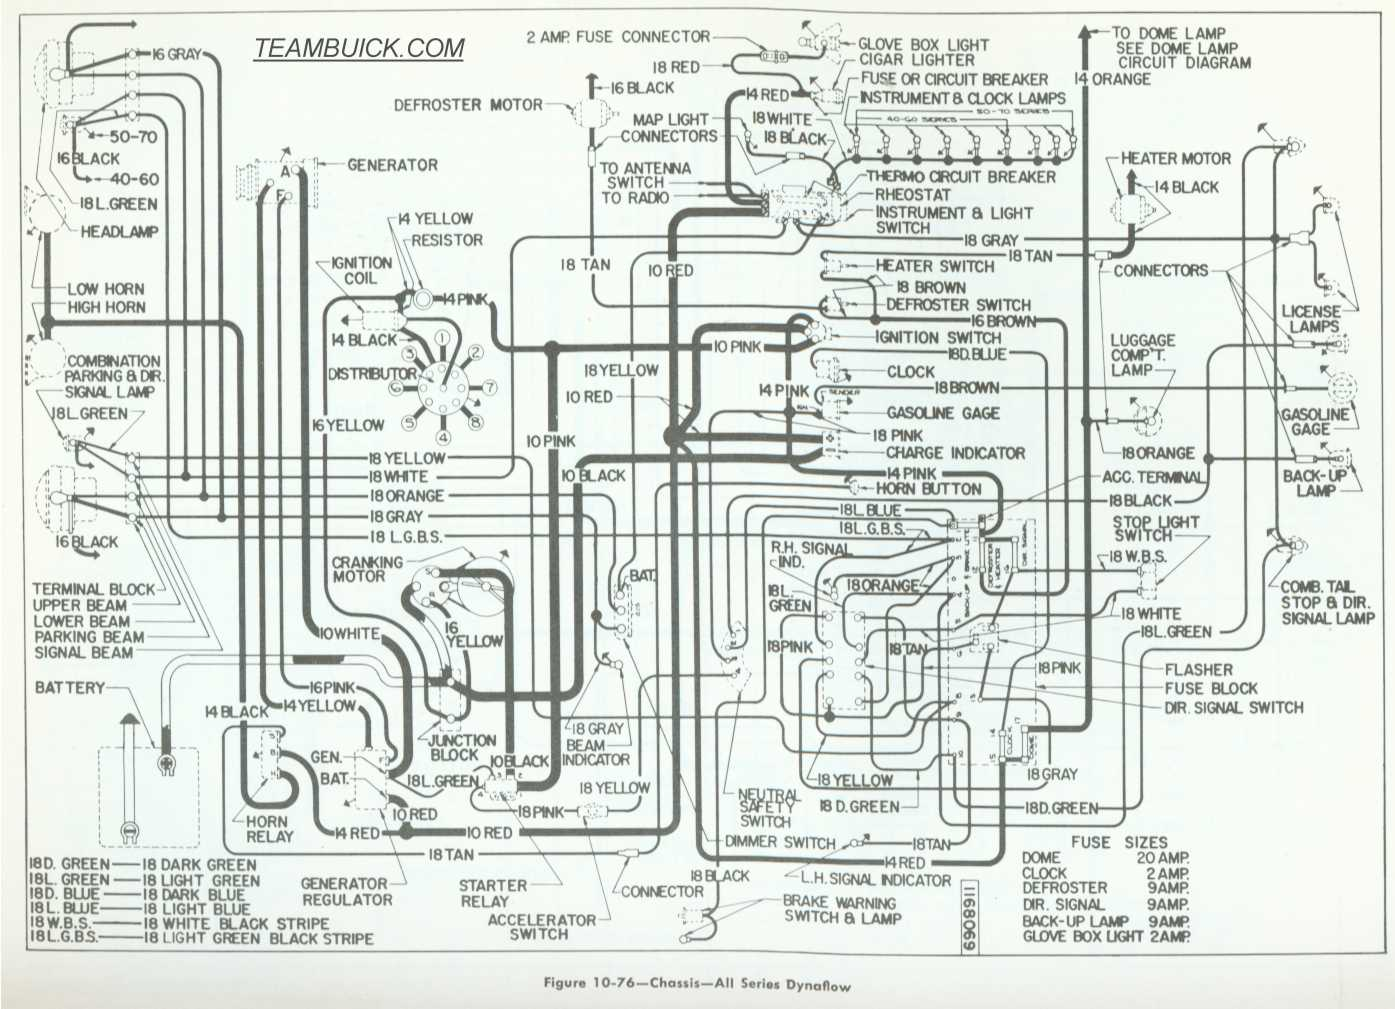 1955 buick wiring diagram today diagram database  1955 buick wiring diagram #7